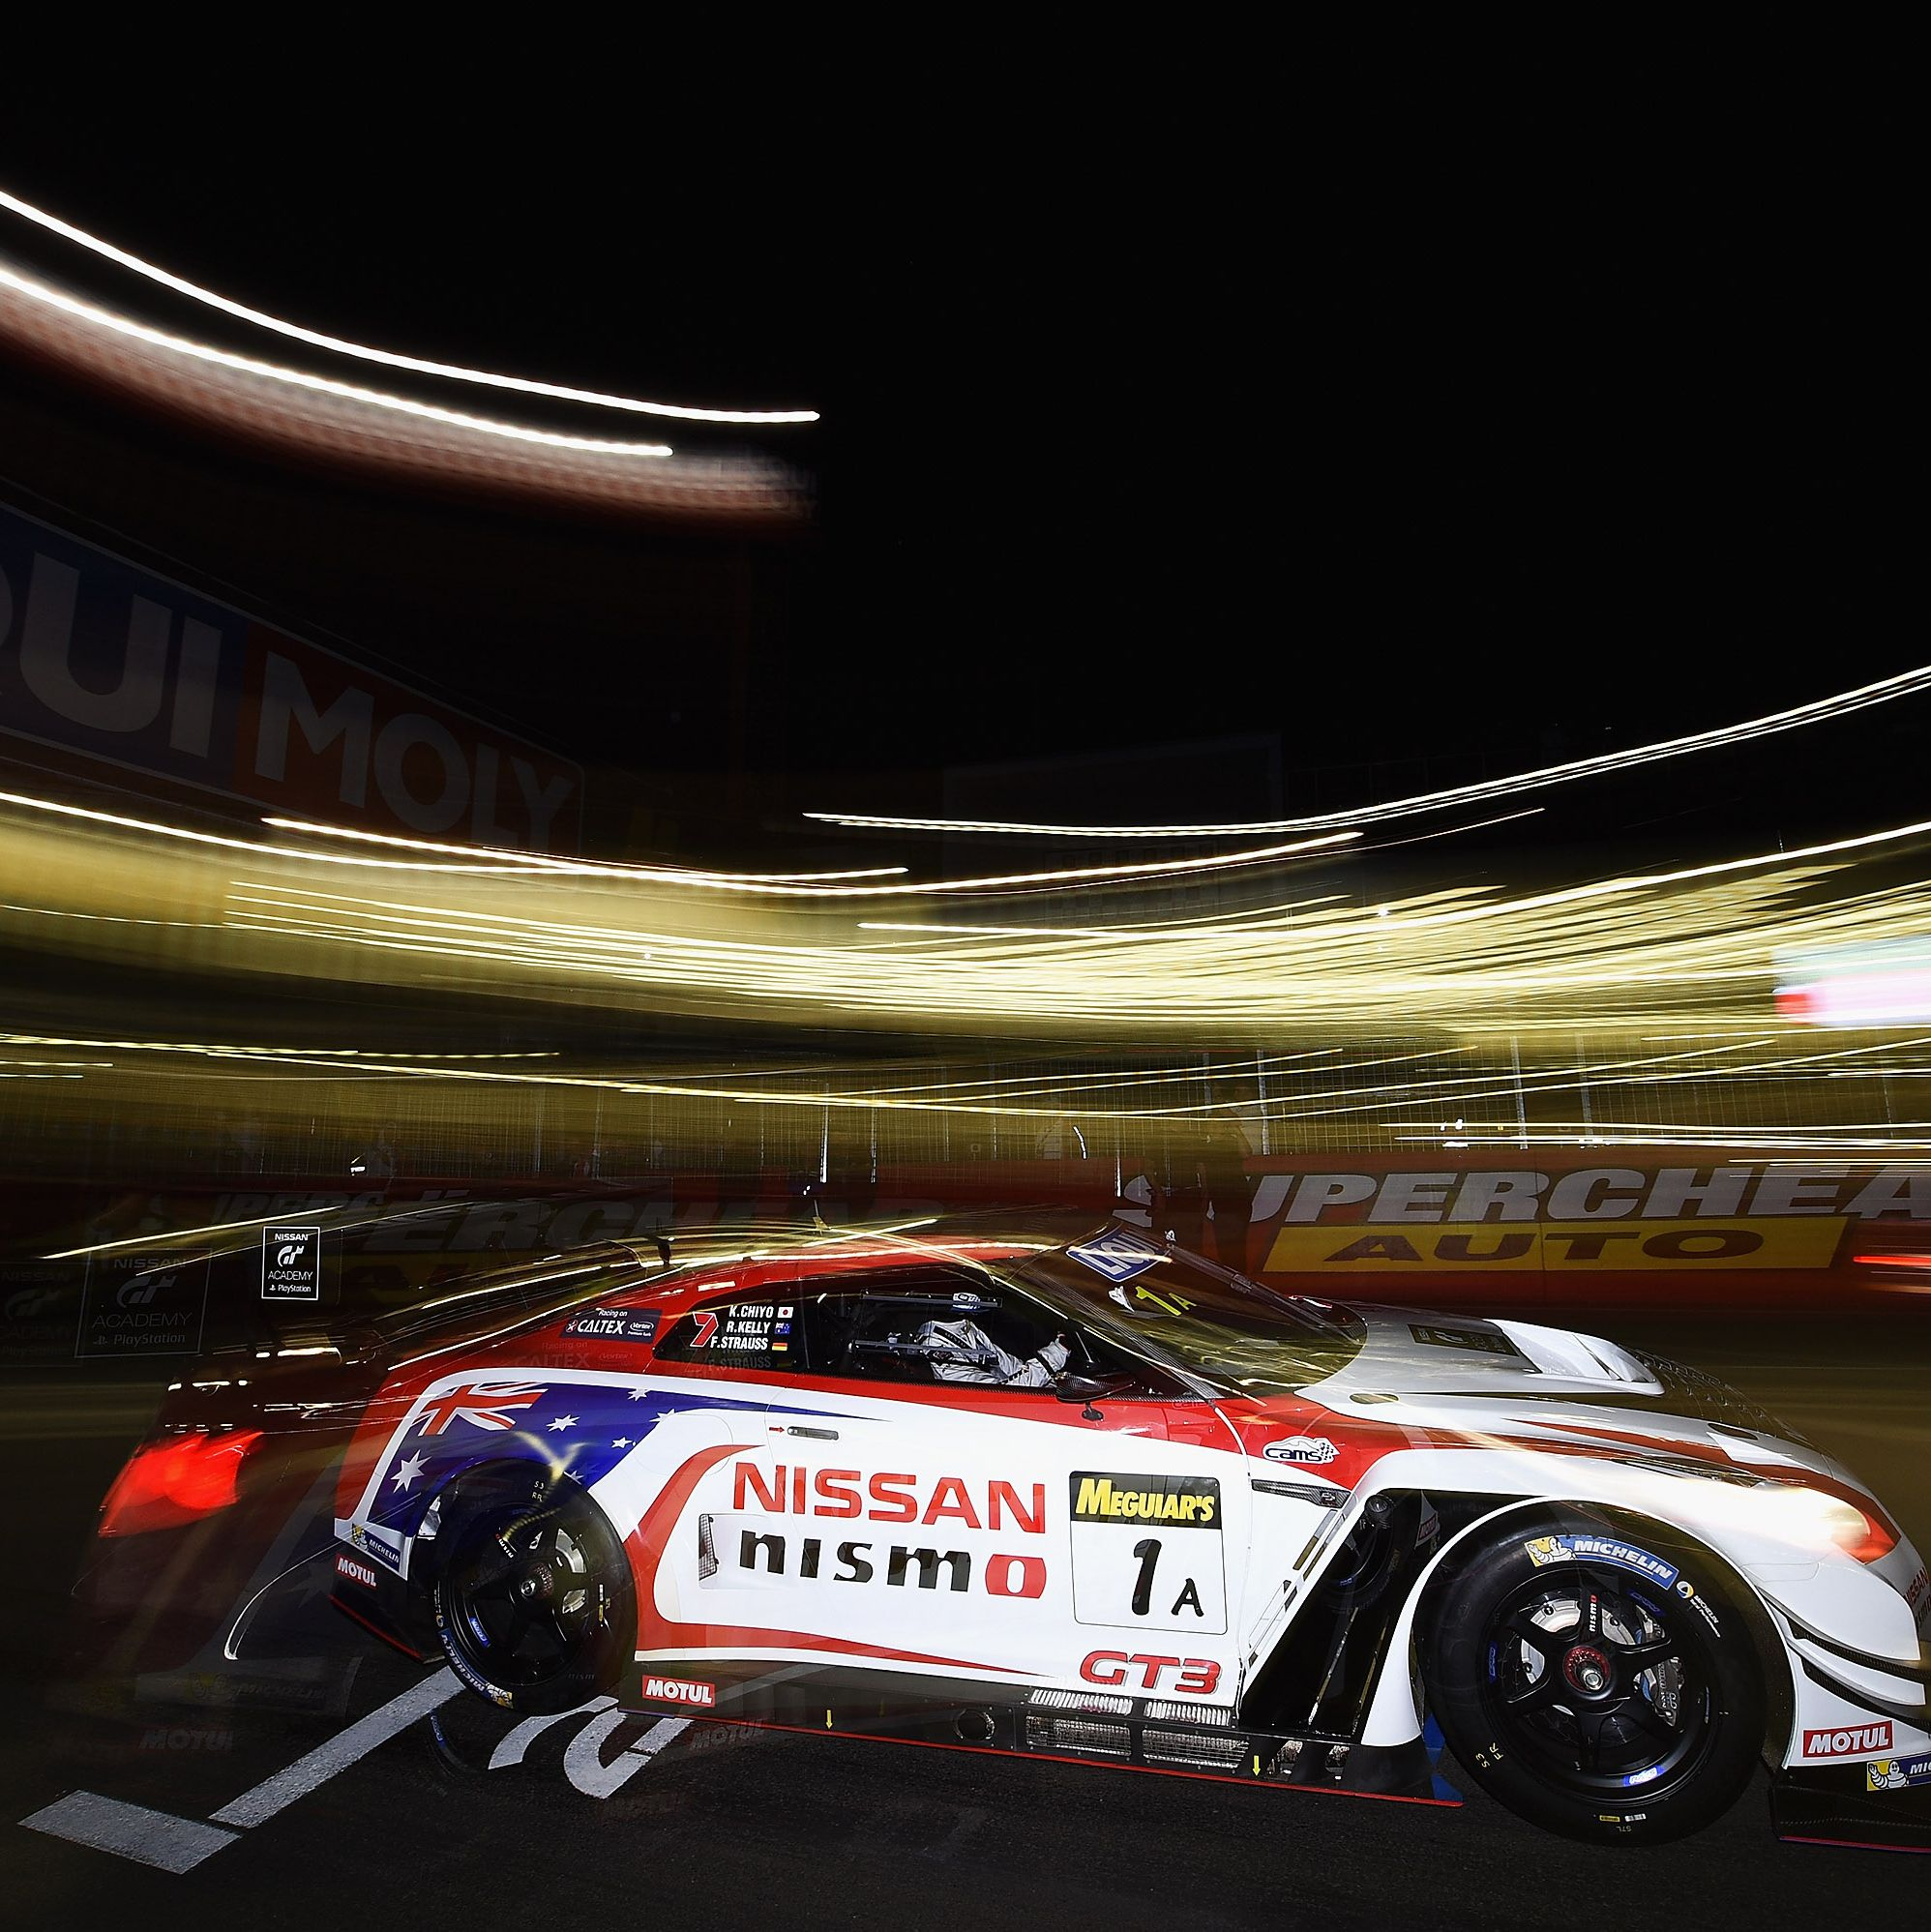 BATHURST, AUSTRALIA - FEBRUARY 07:  Shane van Gisbergen drives the Tekno Autosports Mclaren 650s at the start of the Bathurst 12 Hour Race at Mount Panorama on February 7, 2016 in Bathurst, Australia.  (Photo by Daniel Kalisz/Getty Images)